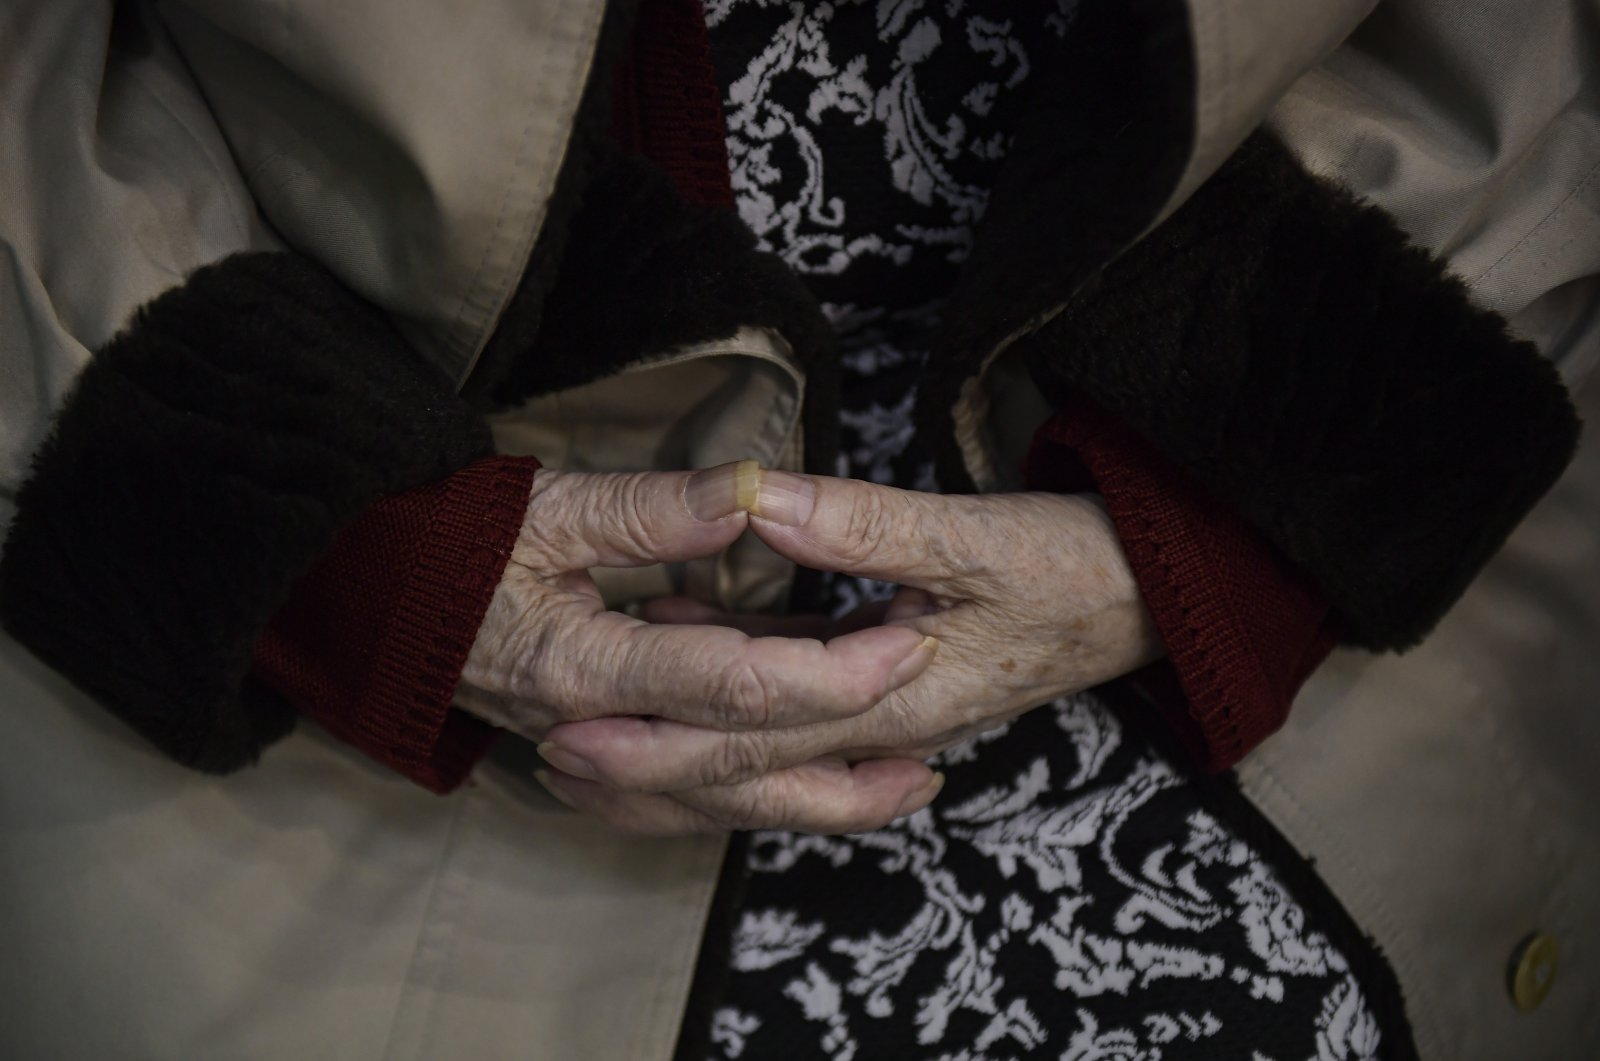 88-year-old Teresa Cabello waits to receive a Pfizer vaccine during a COVID-19 vaccination campaign in Pamplona, northern Spain, March 16, 2021. (AP Photo)